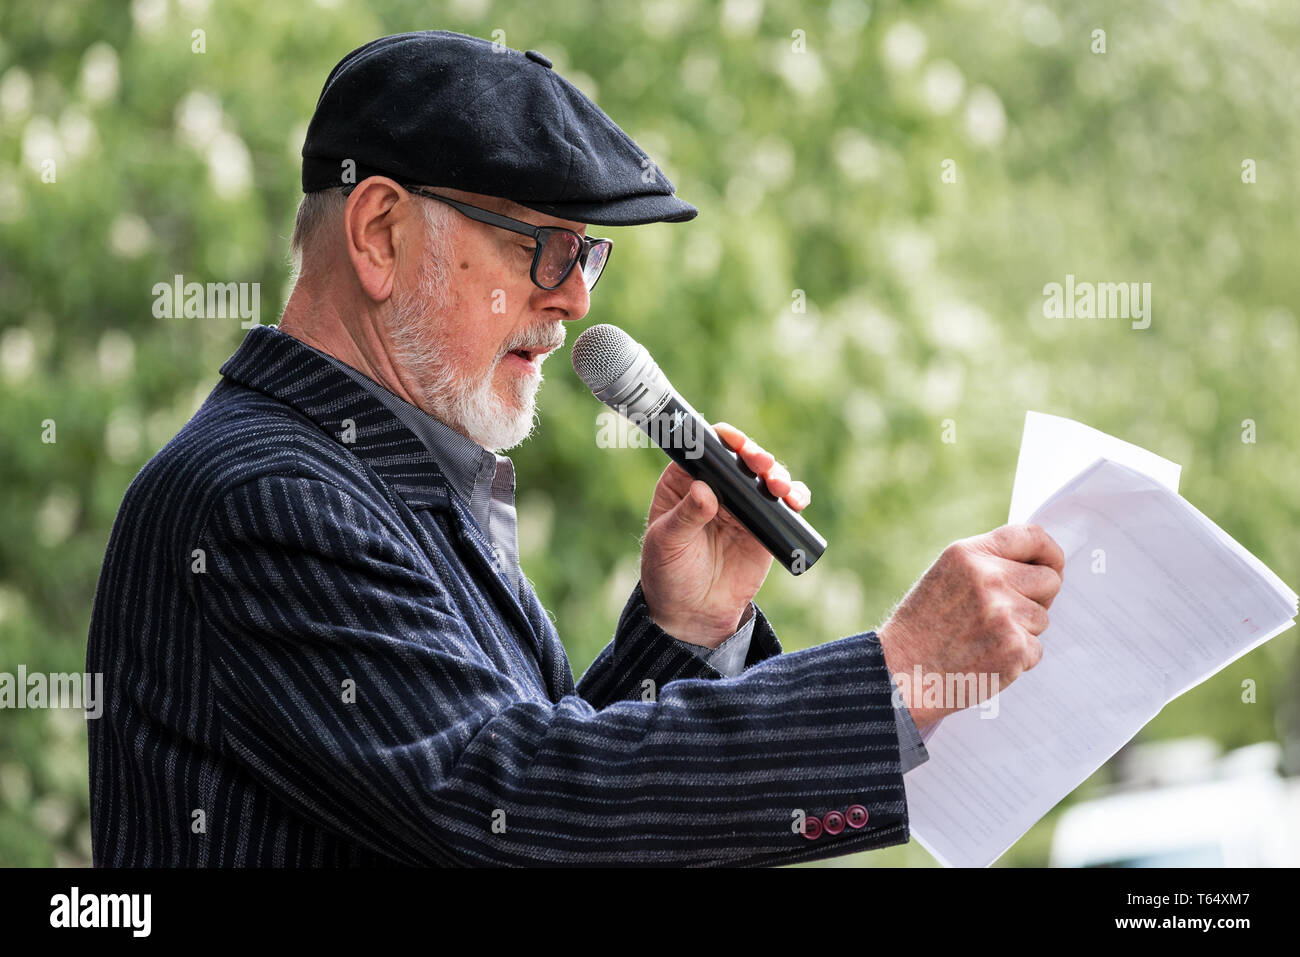 Oxford World Day for Animals in Laboratories. Well known actor and animal rights activist Peter Egan speaking at the rally in Oxford. - Stock Image